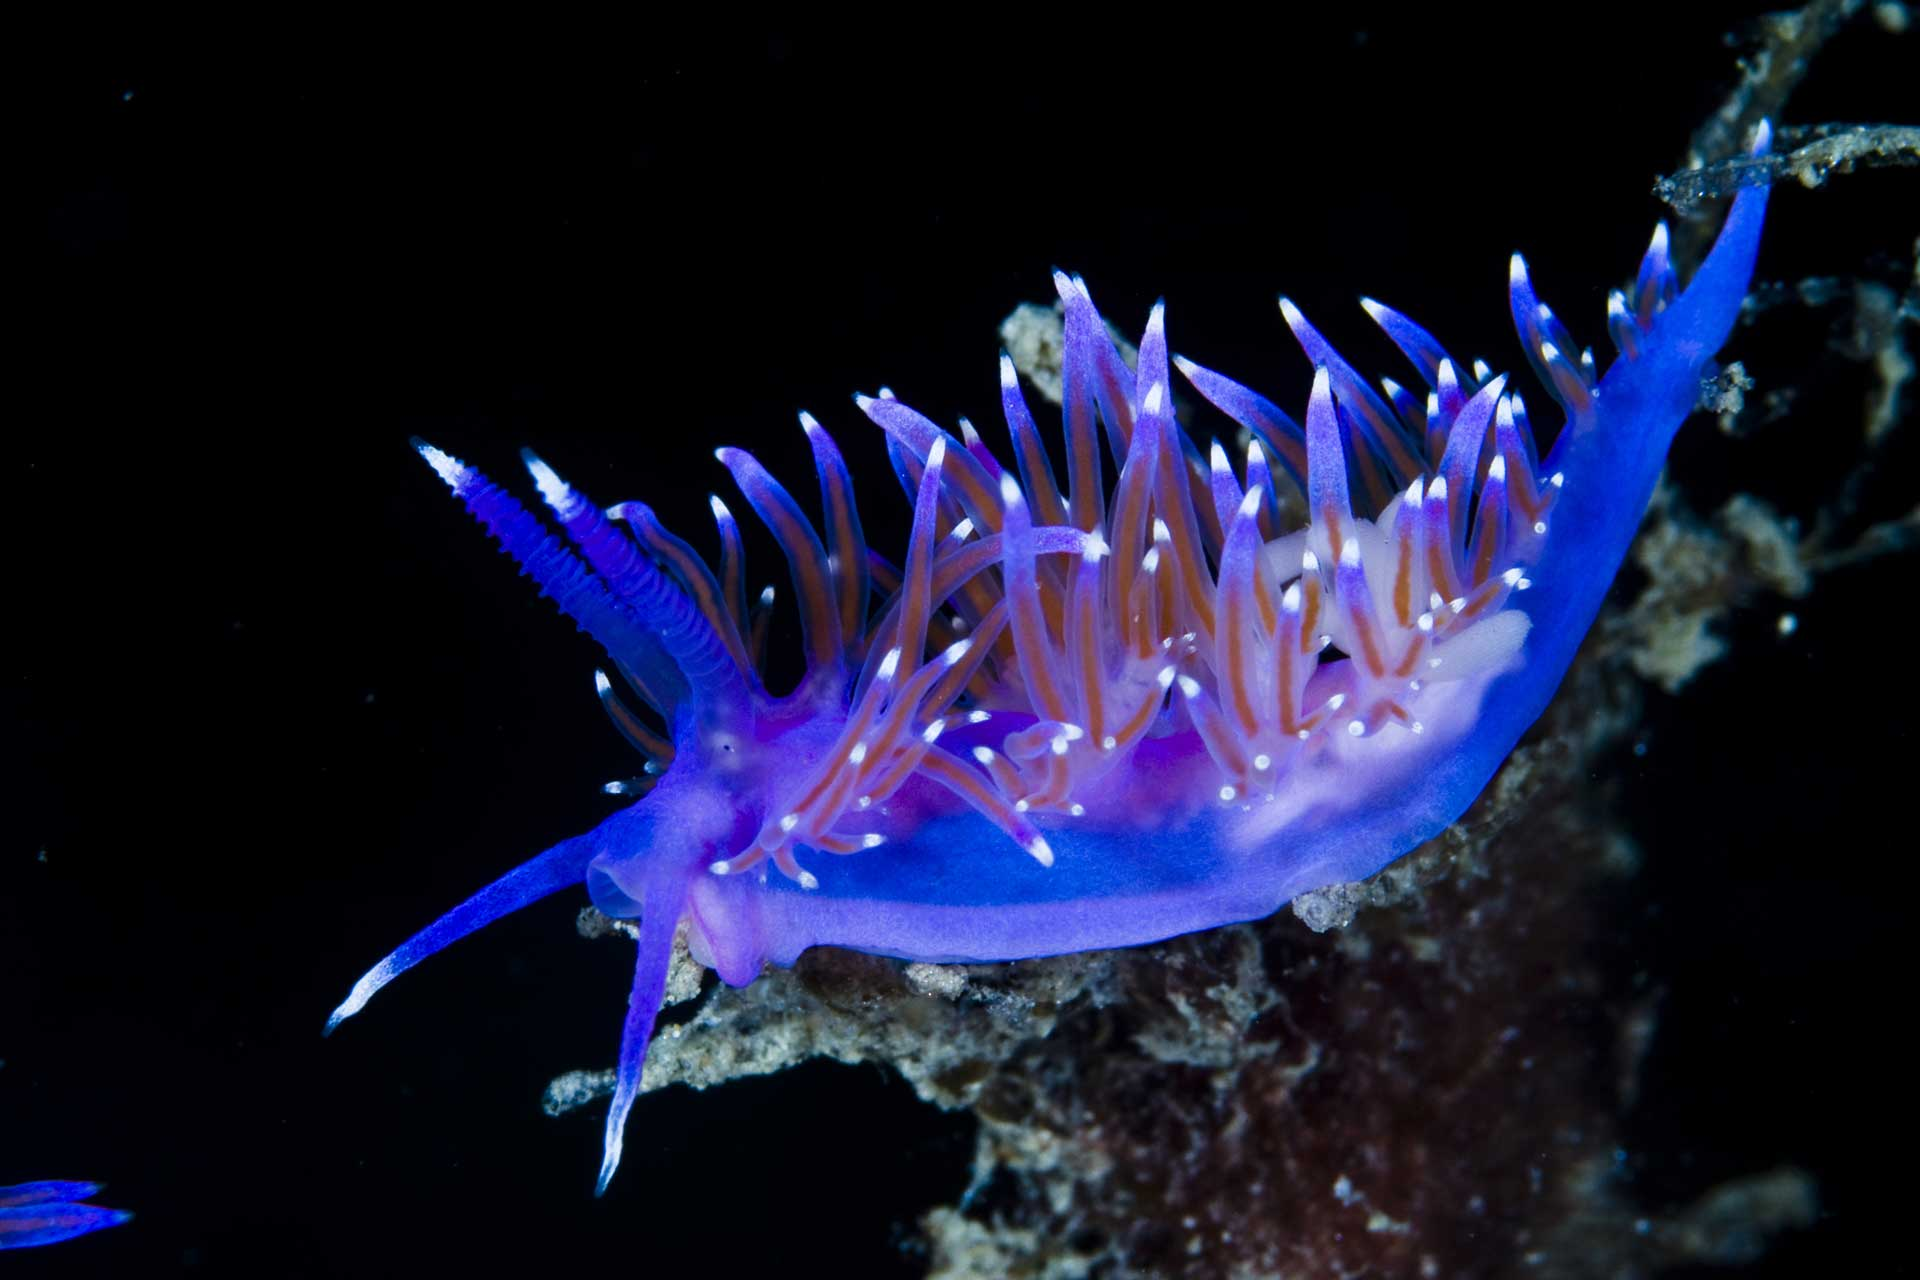 A beautifully colored nudibranch nice highlights on black background.